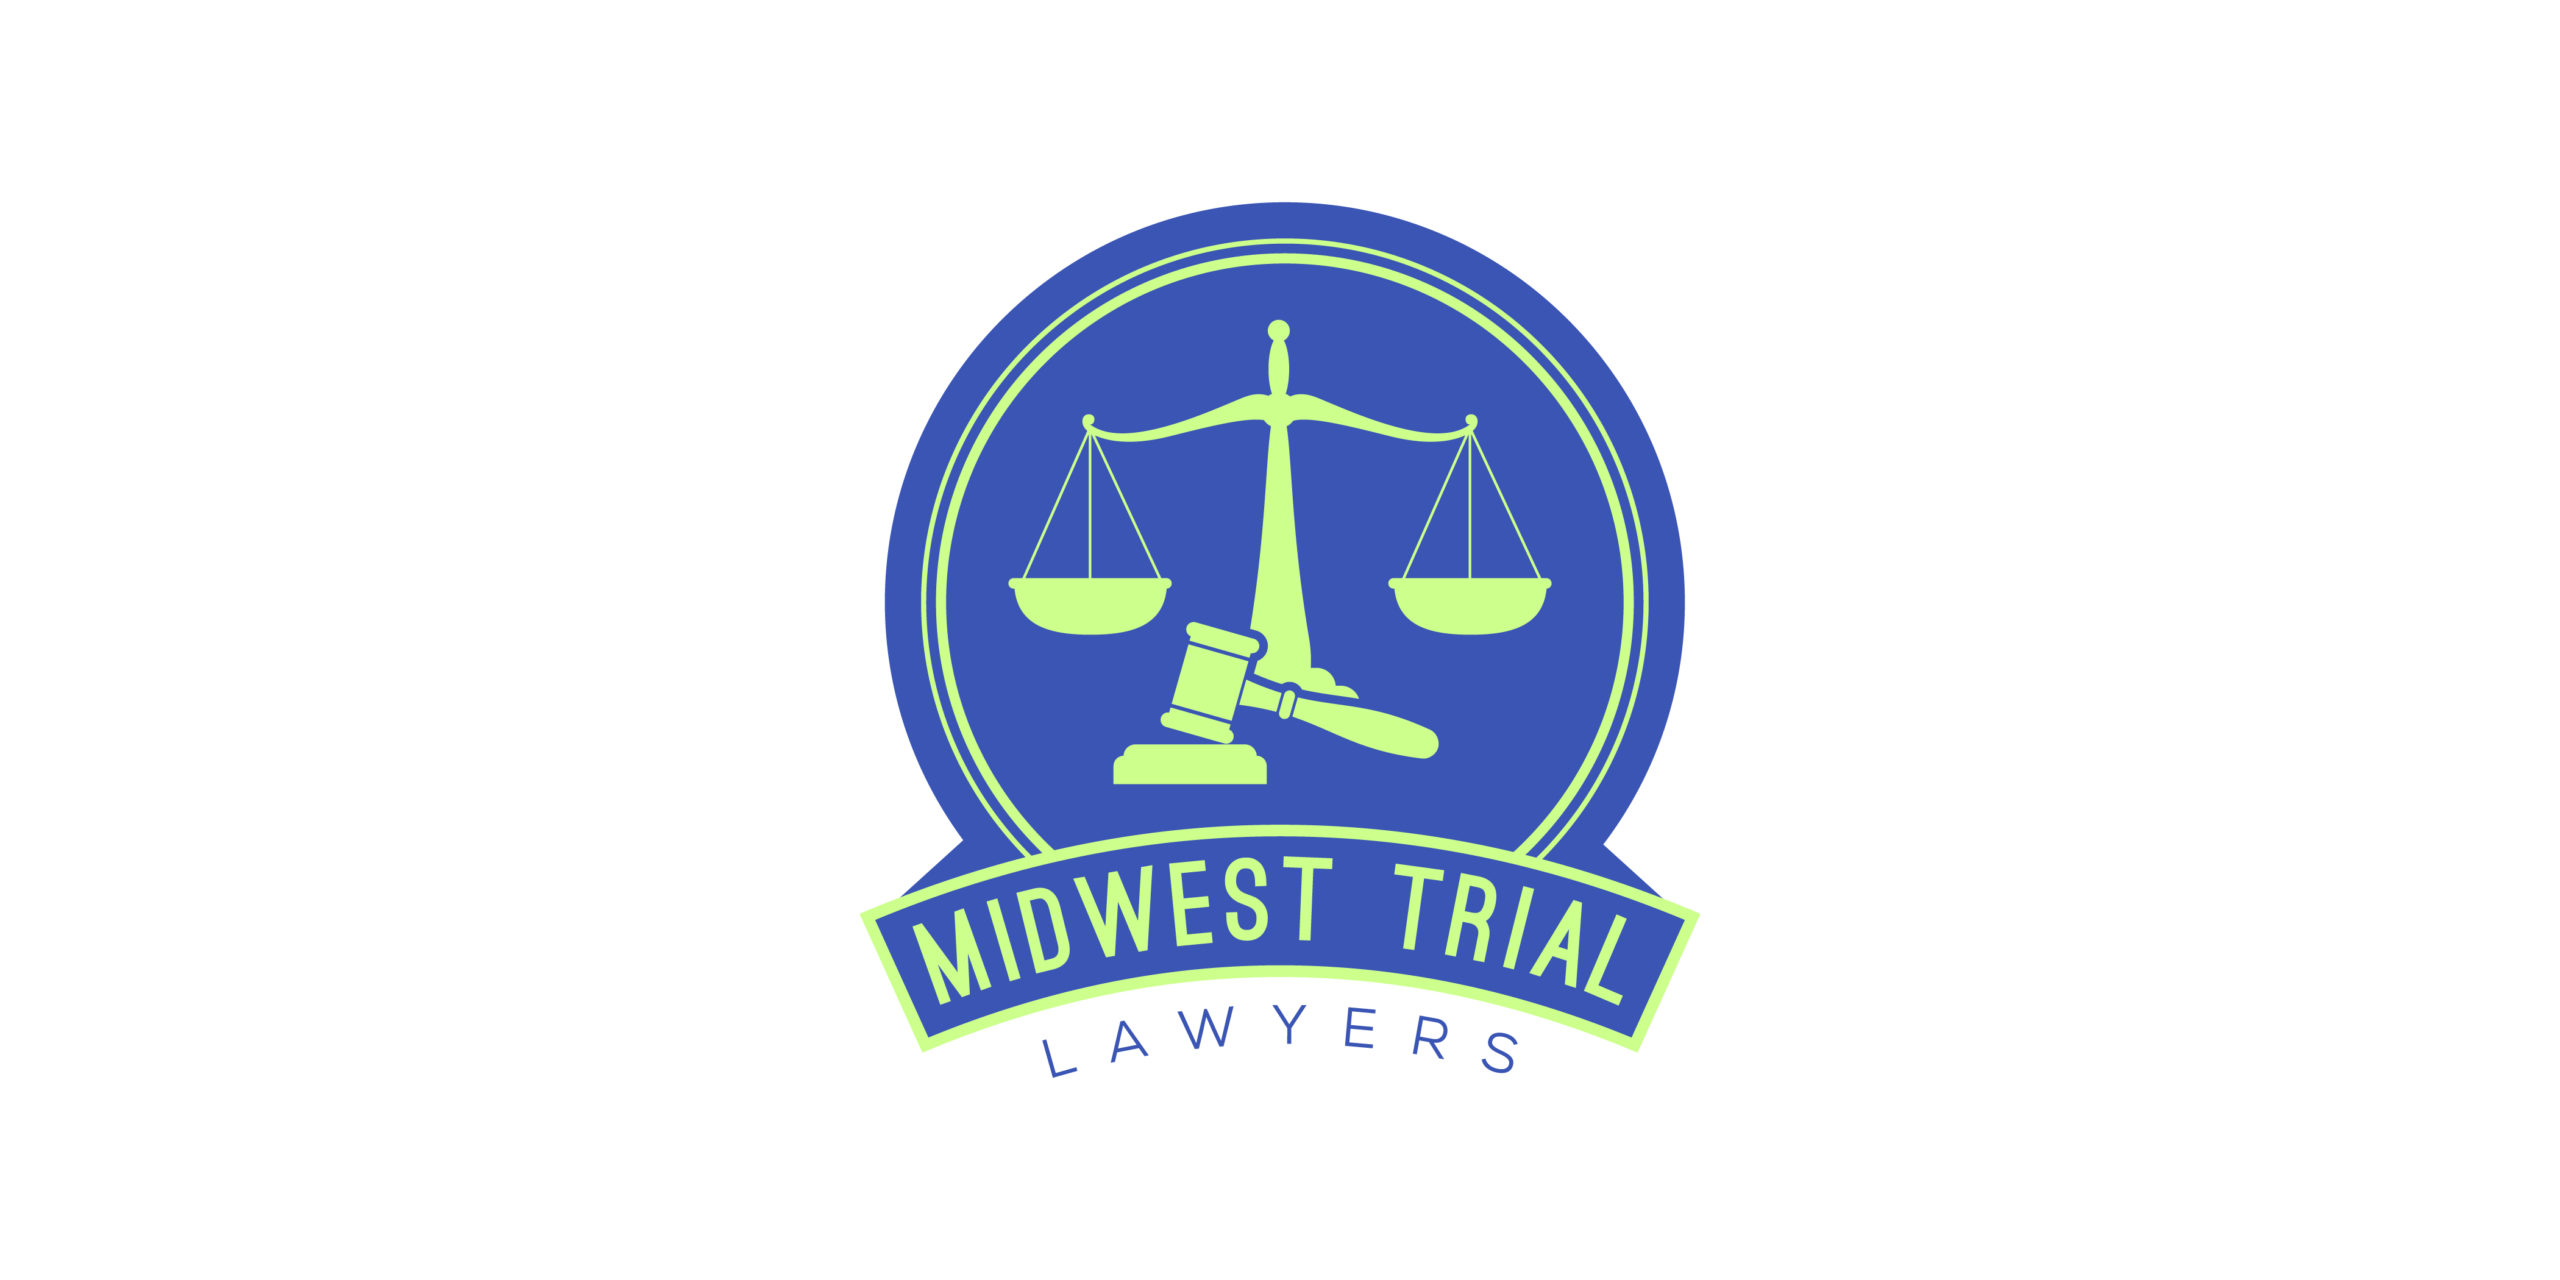 Midwest Trial Lawyers Announces Expanded Areas of Service for Their Overland Park Law Firm